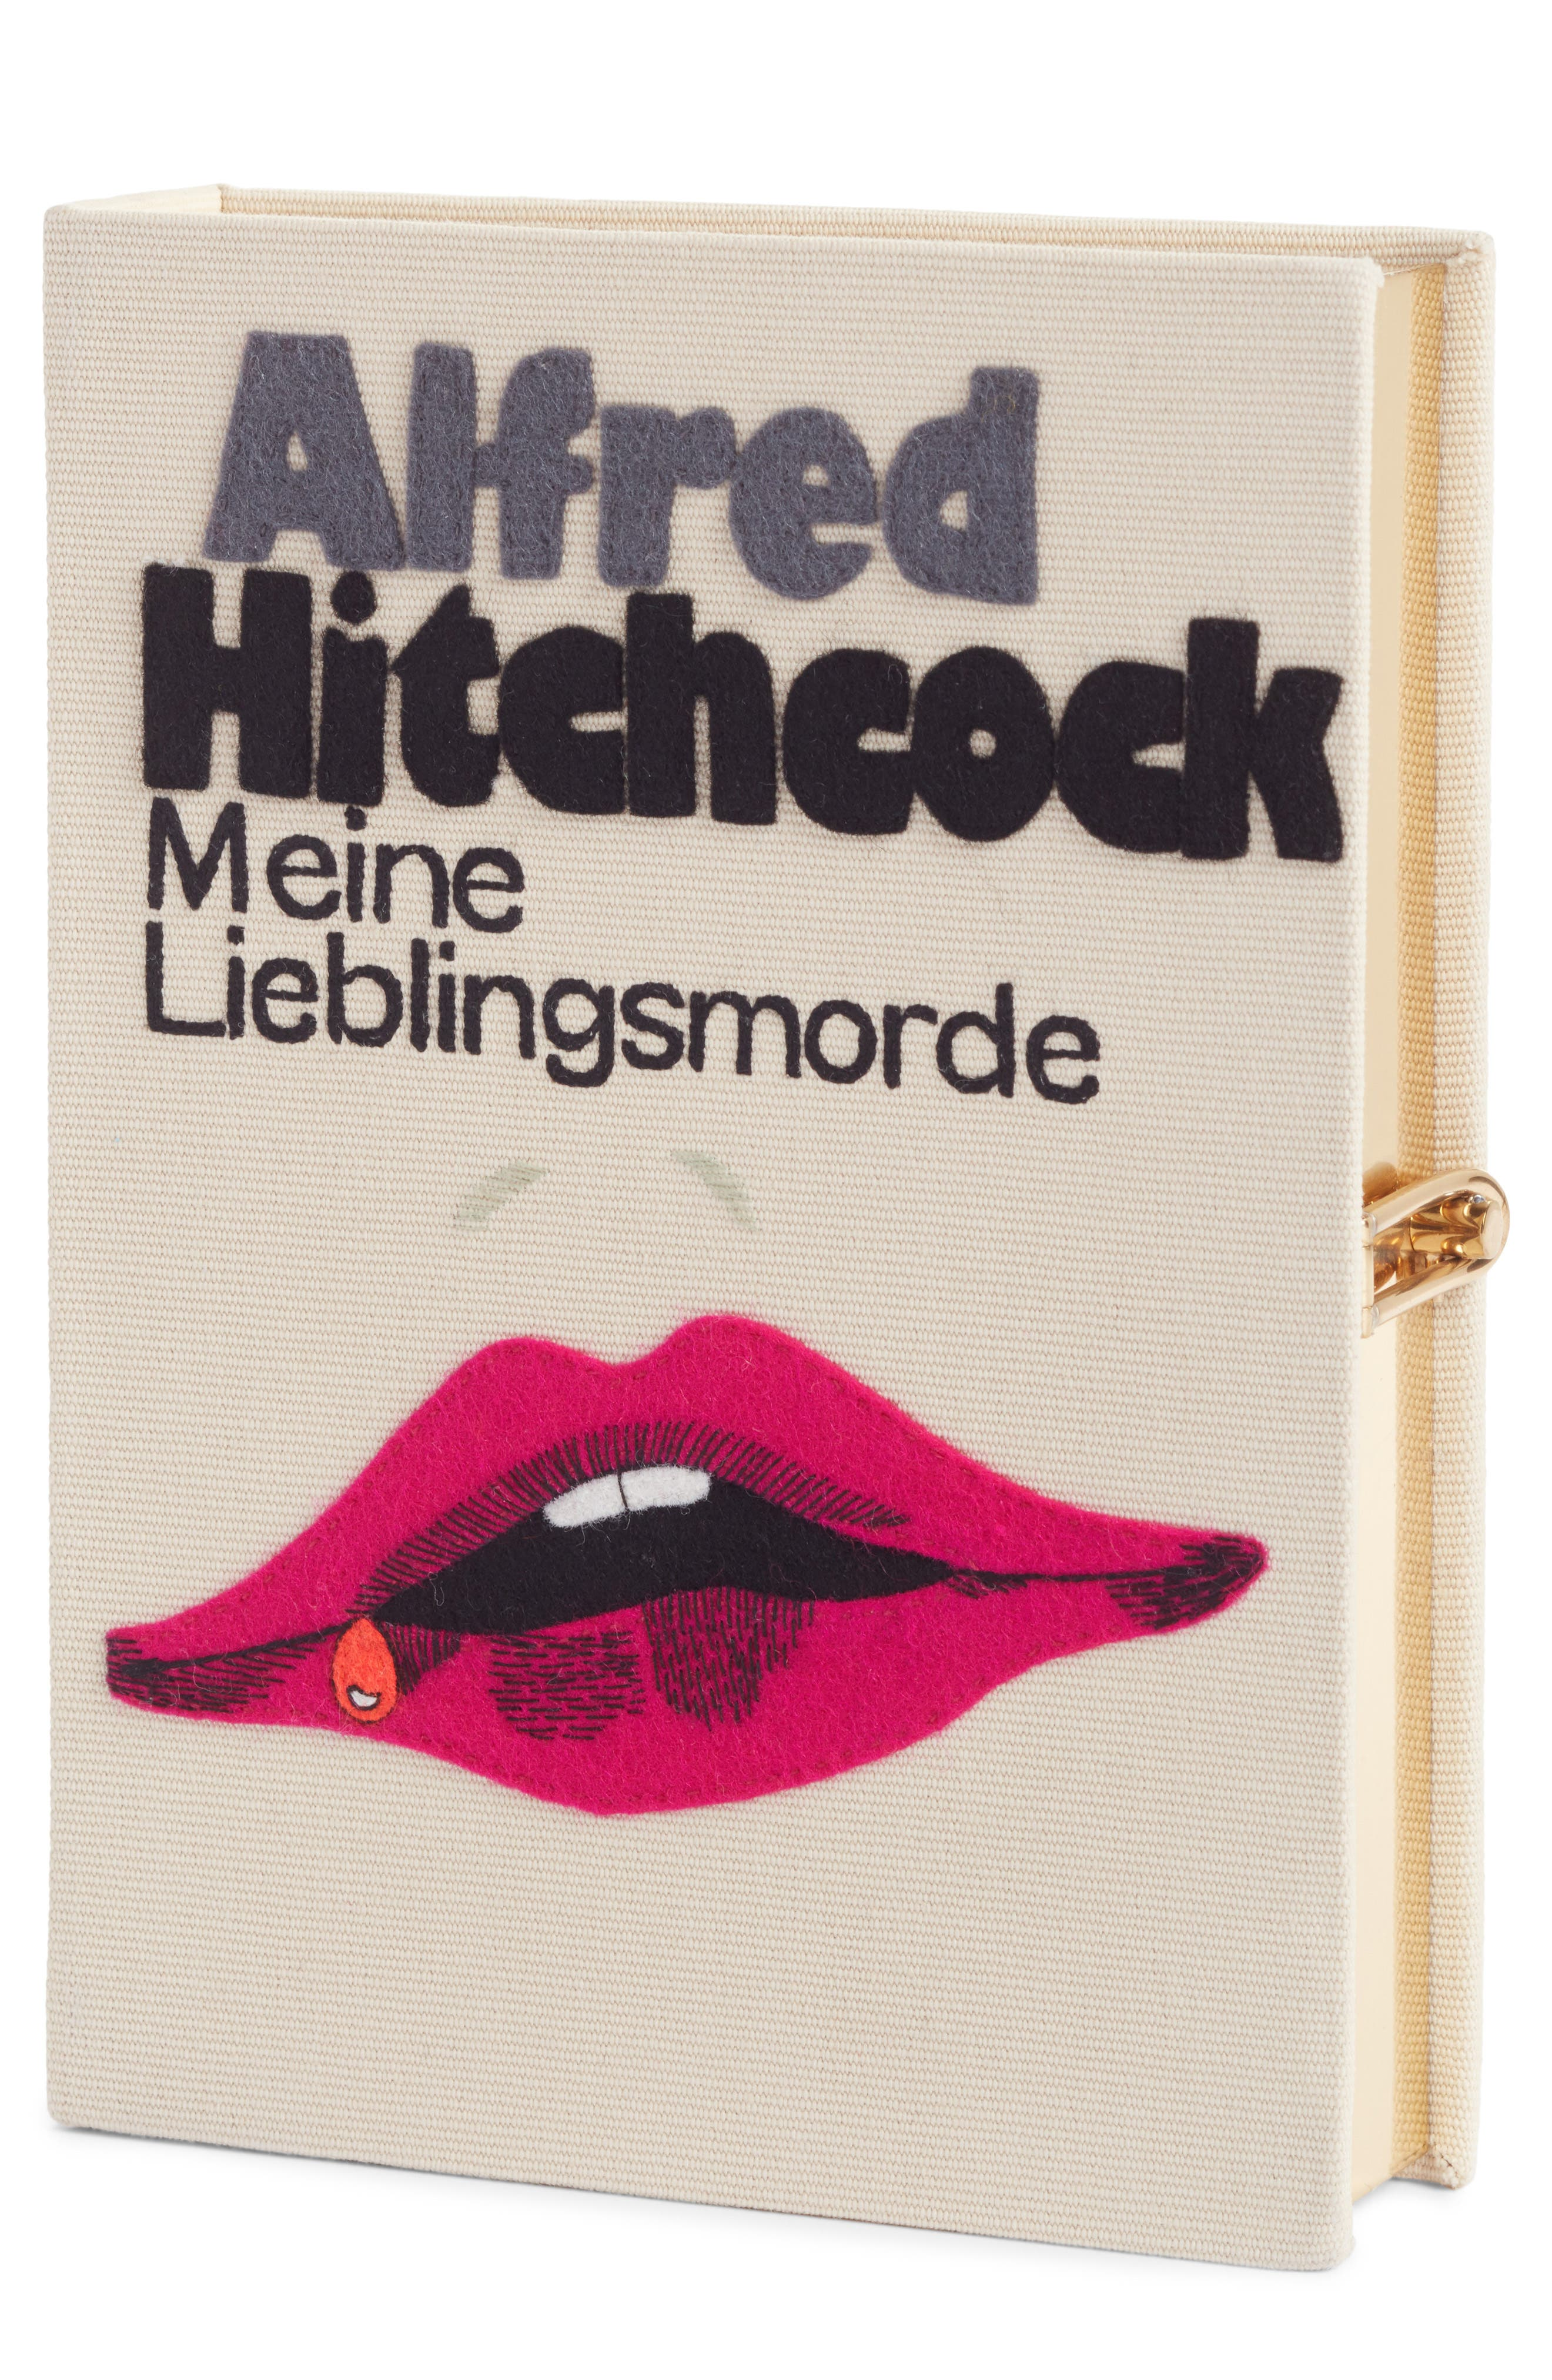 Hitchcock - 'Meine Lieblingsmorde' Book Clutch,                             Main thumbnail 1, color,                             900